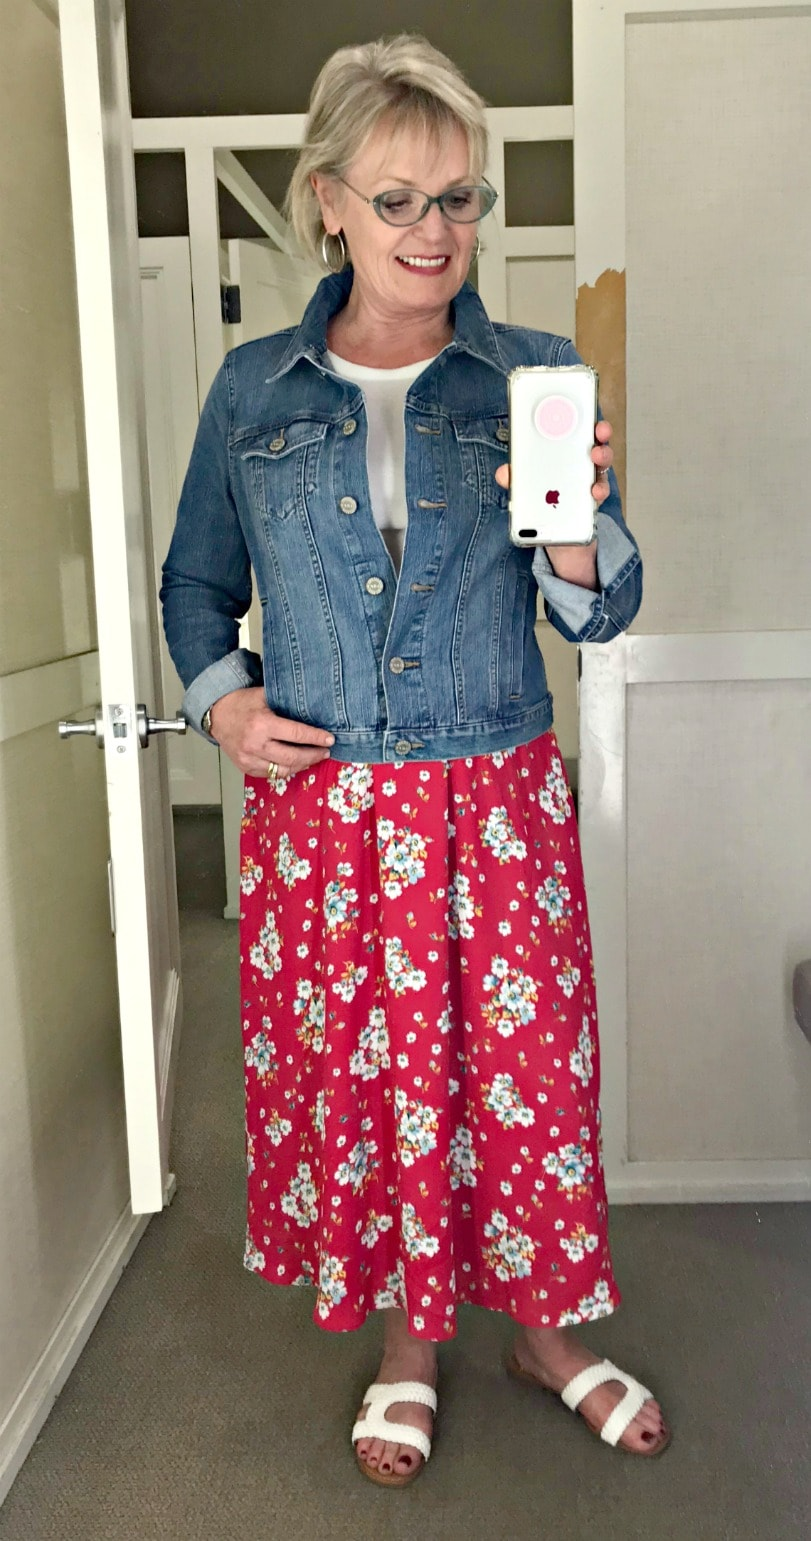 Jennifer Connolly of A Well Styled Life wearing floral skirt with denim jacket from Loft